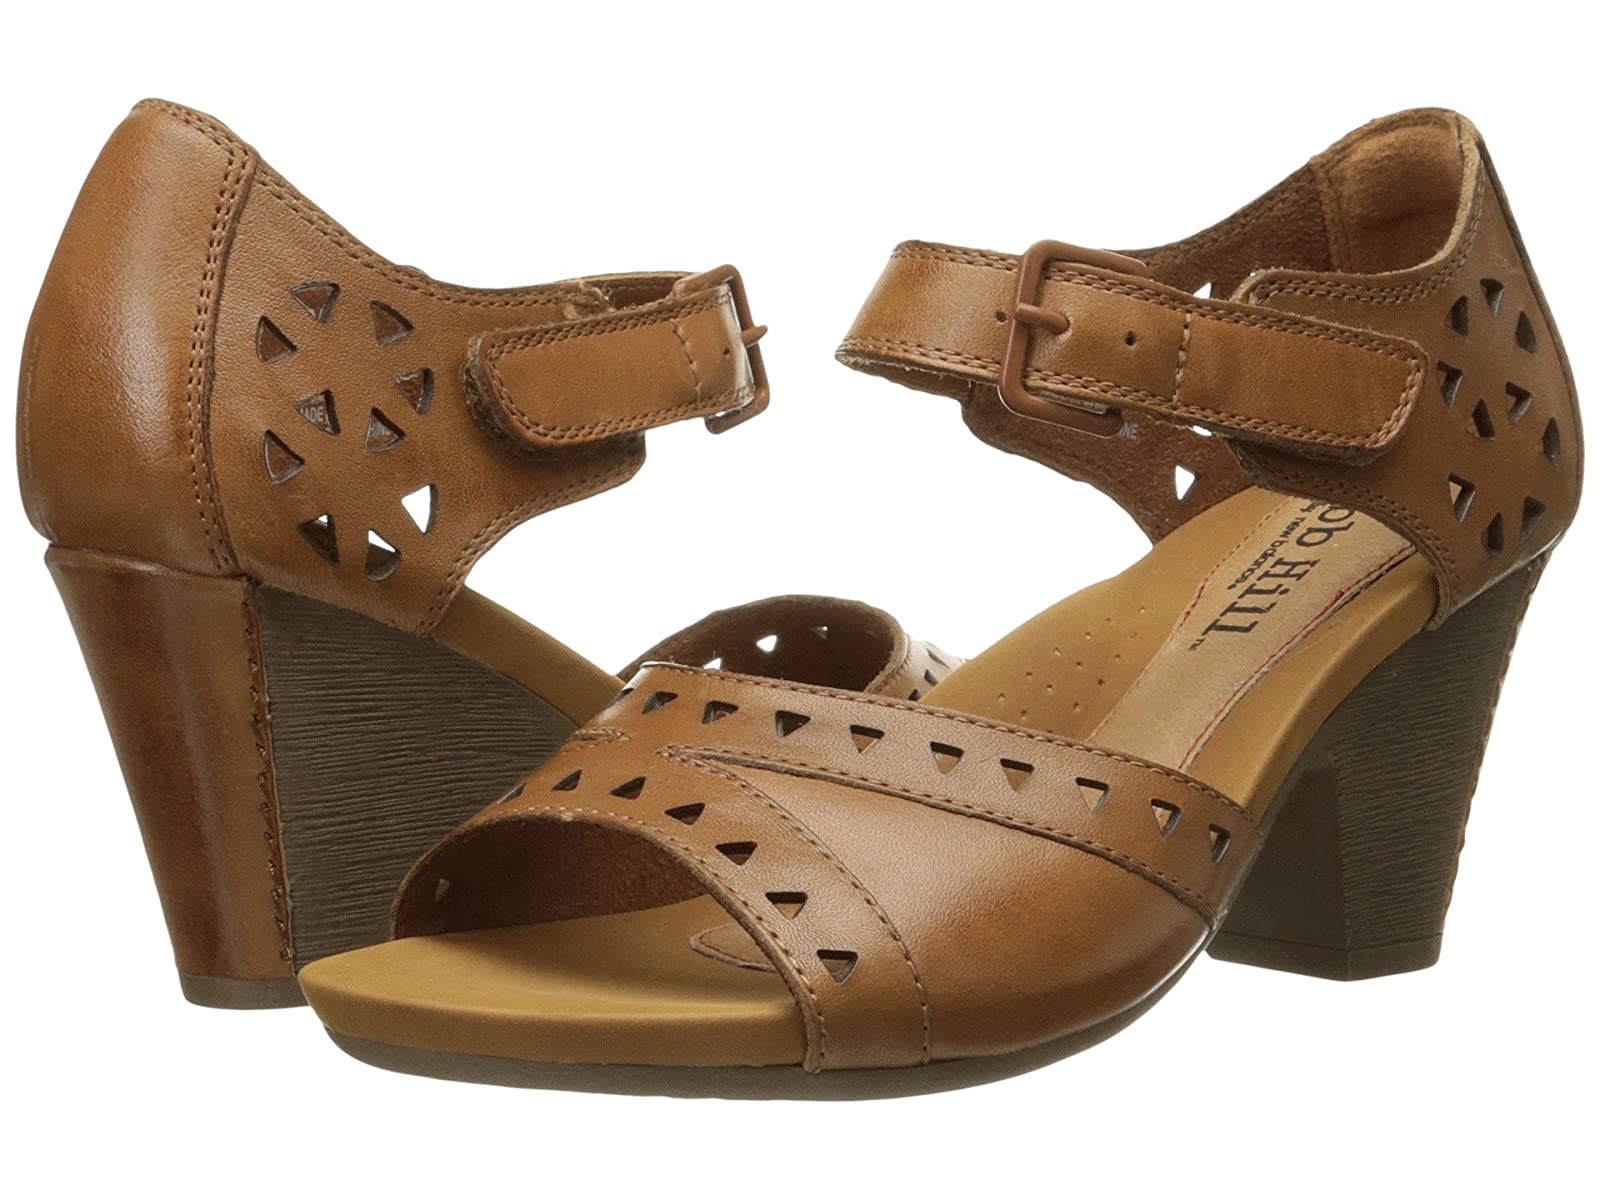 Rockport Cobb Hill Collection Cobb Hill TristaCheap and distinctive eye-catching shoes